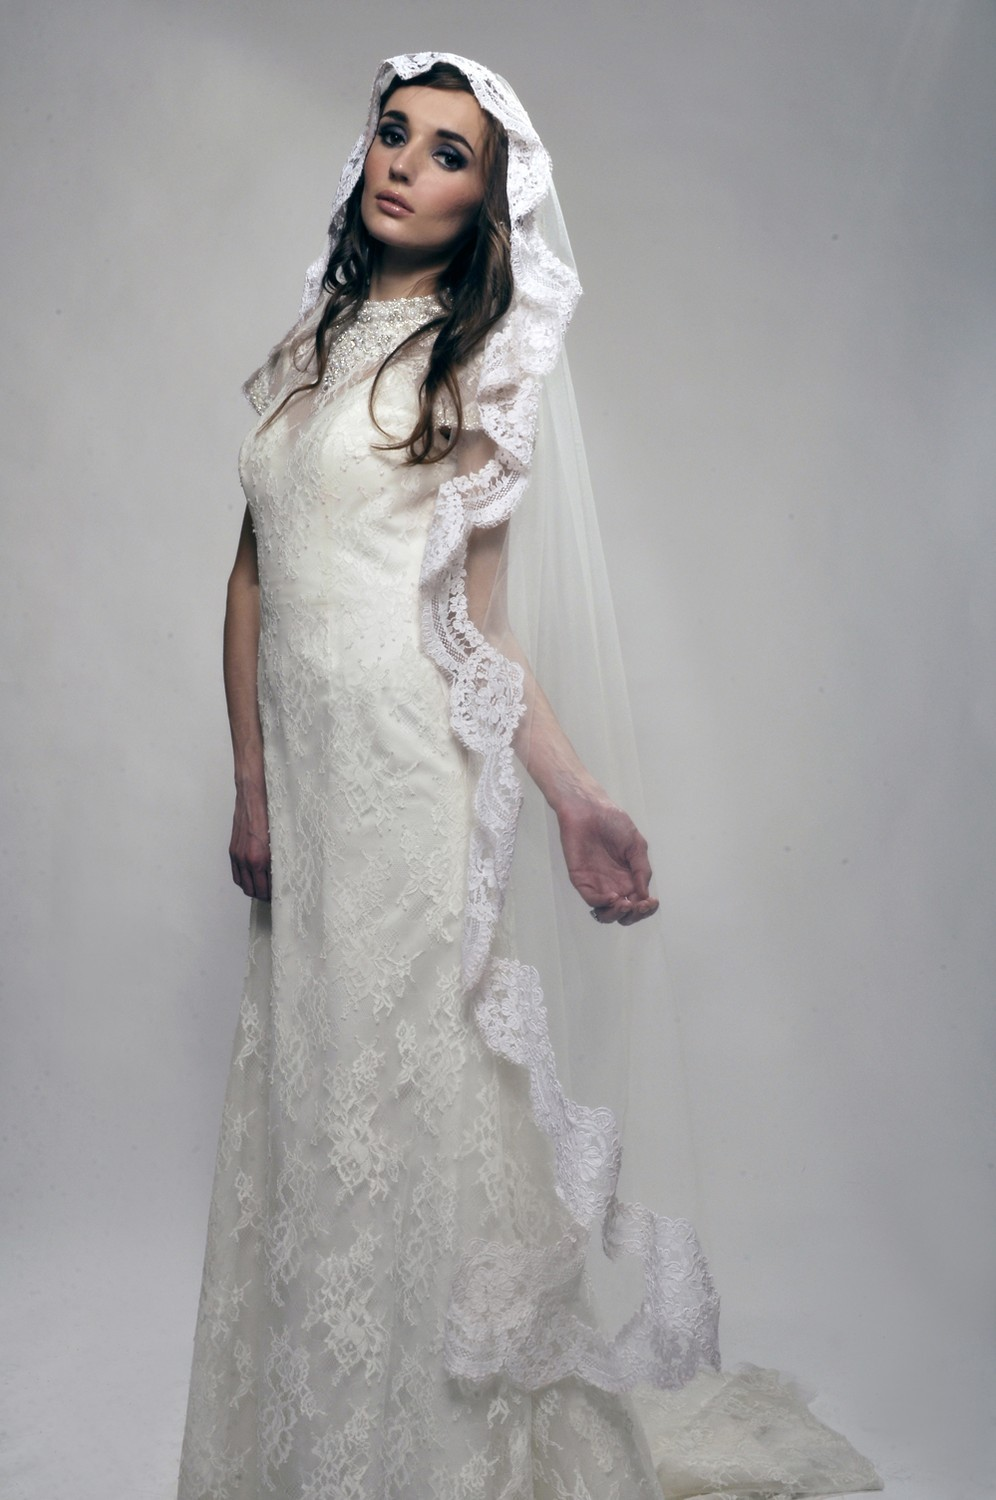 Romantic-wedding-accessories-bridal-head-chic-mantilla-veils-french-net-lace.full